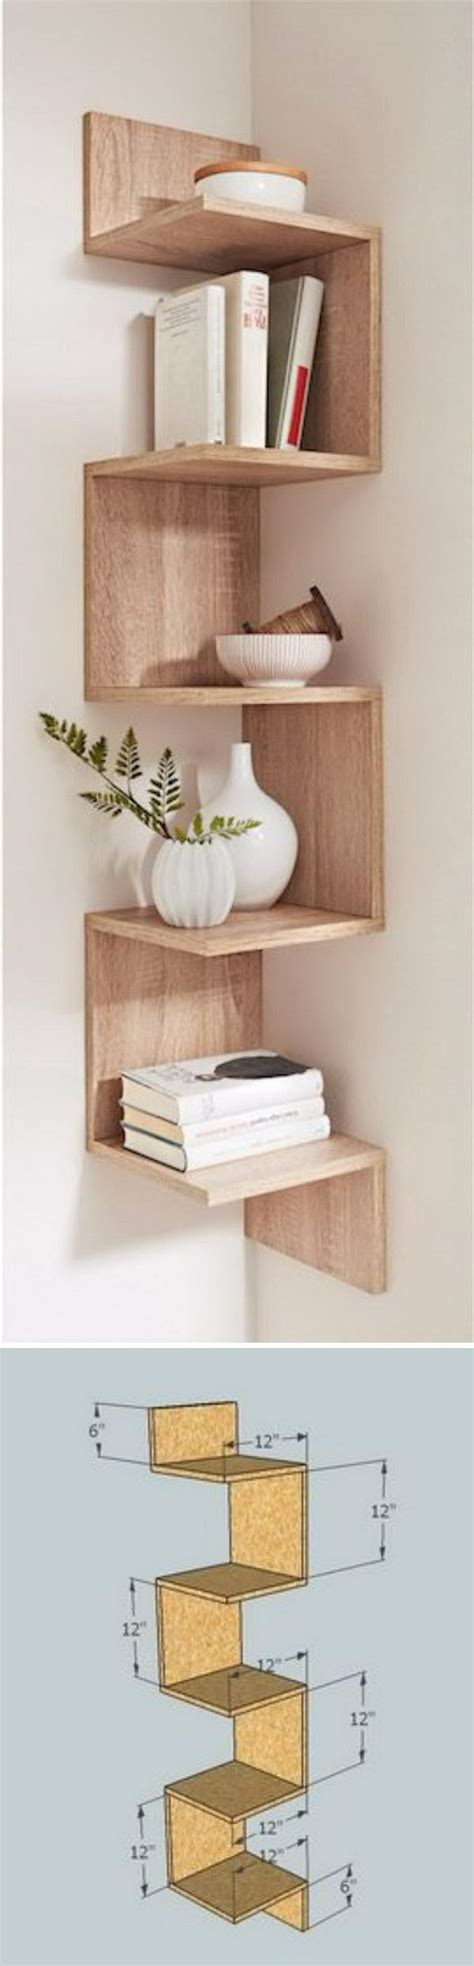 bookshelves diy 20 diy corner shelves to beautify your awkward corner 2017